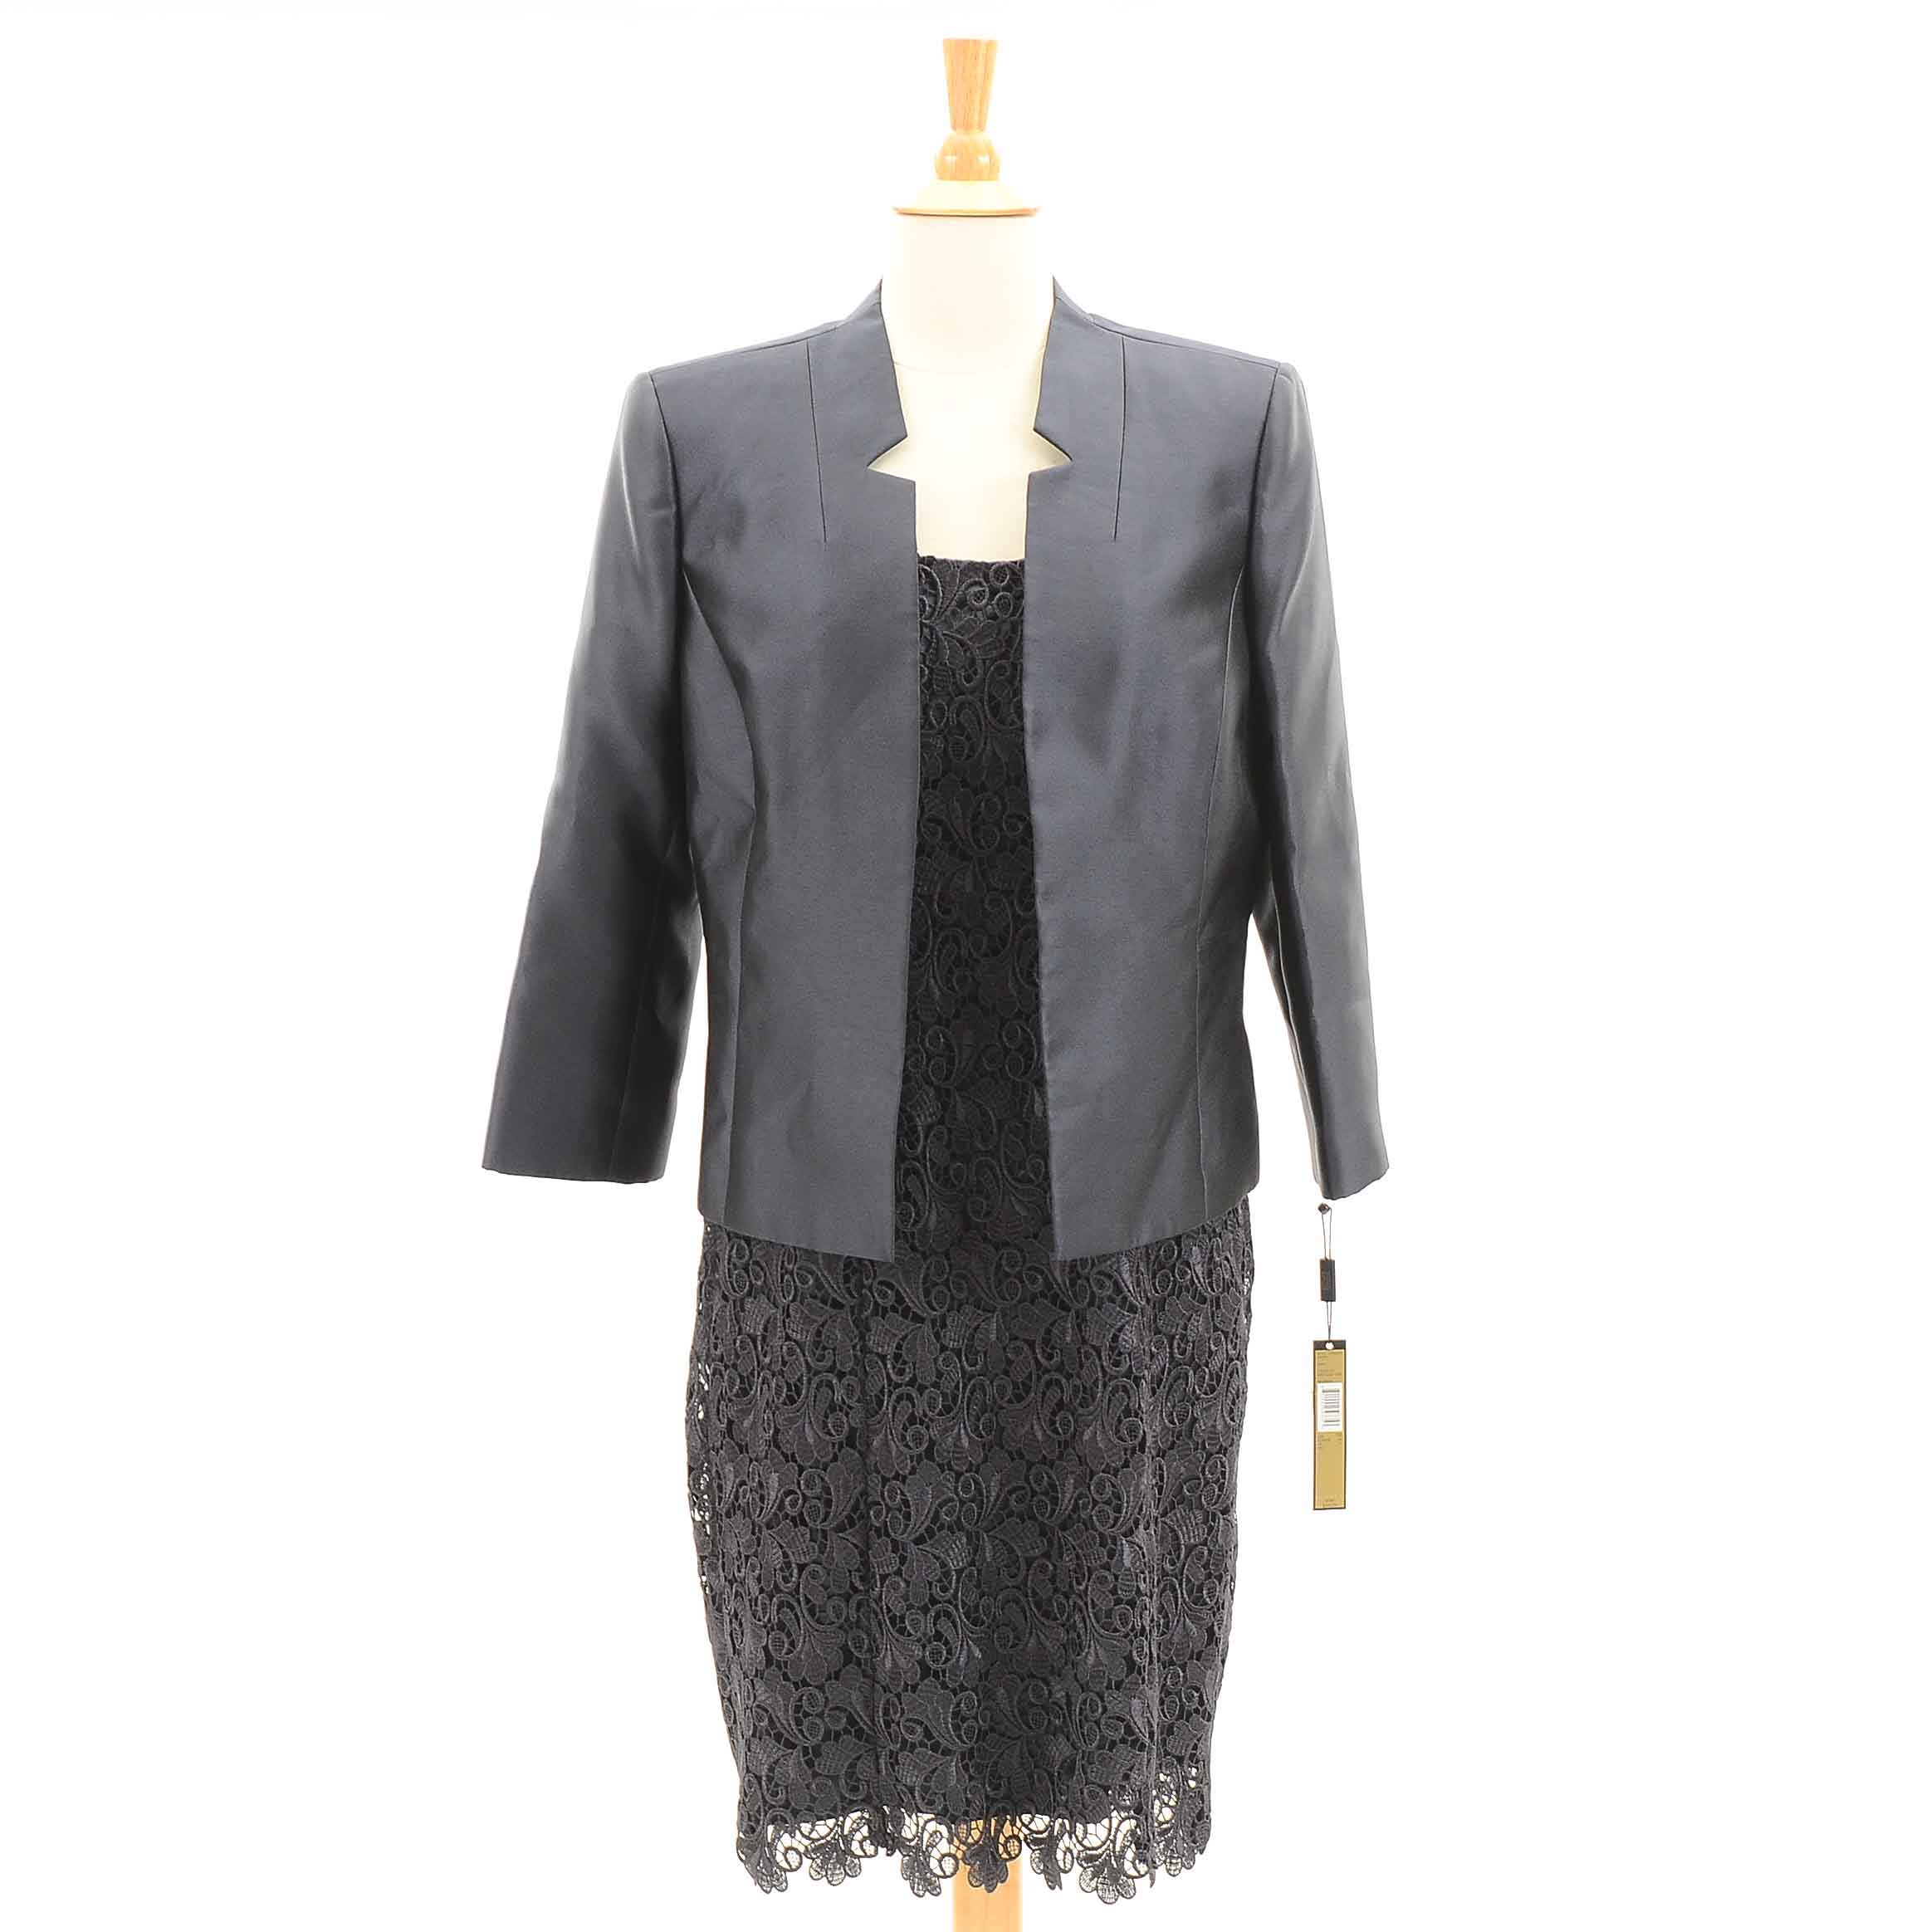 Tahari Lace Dress and Jacket